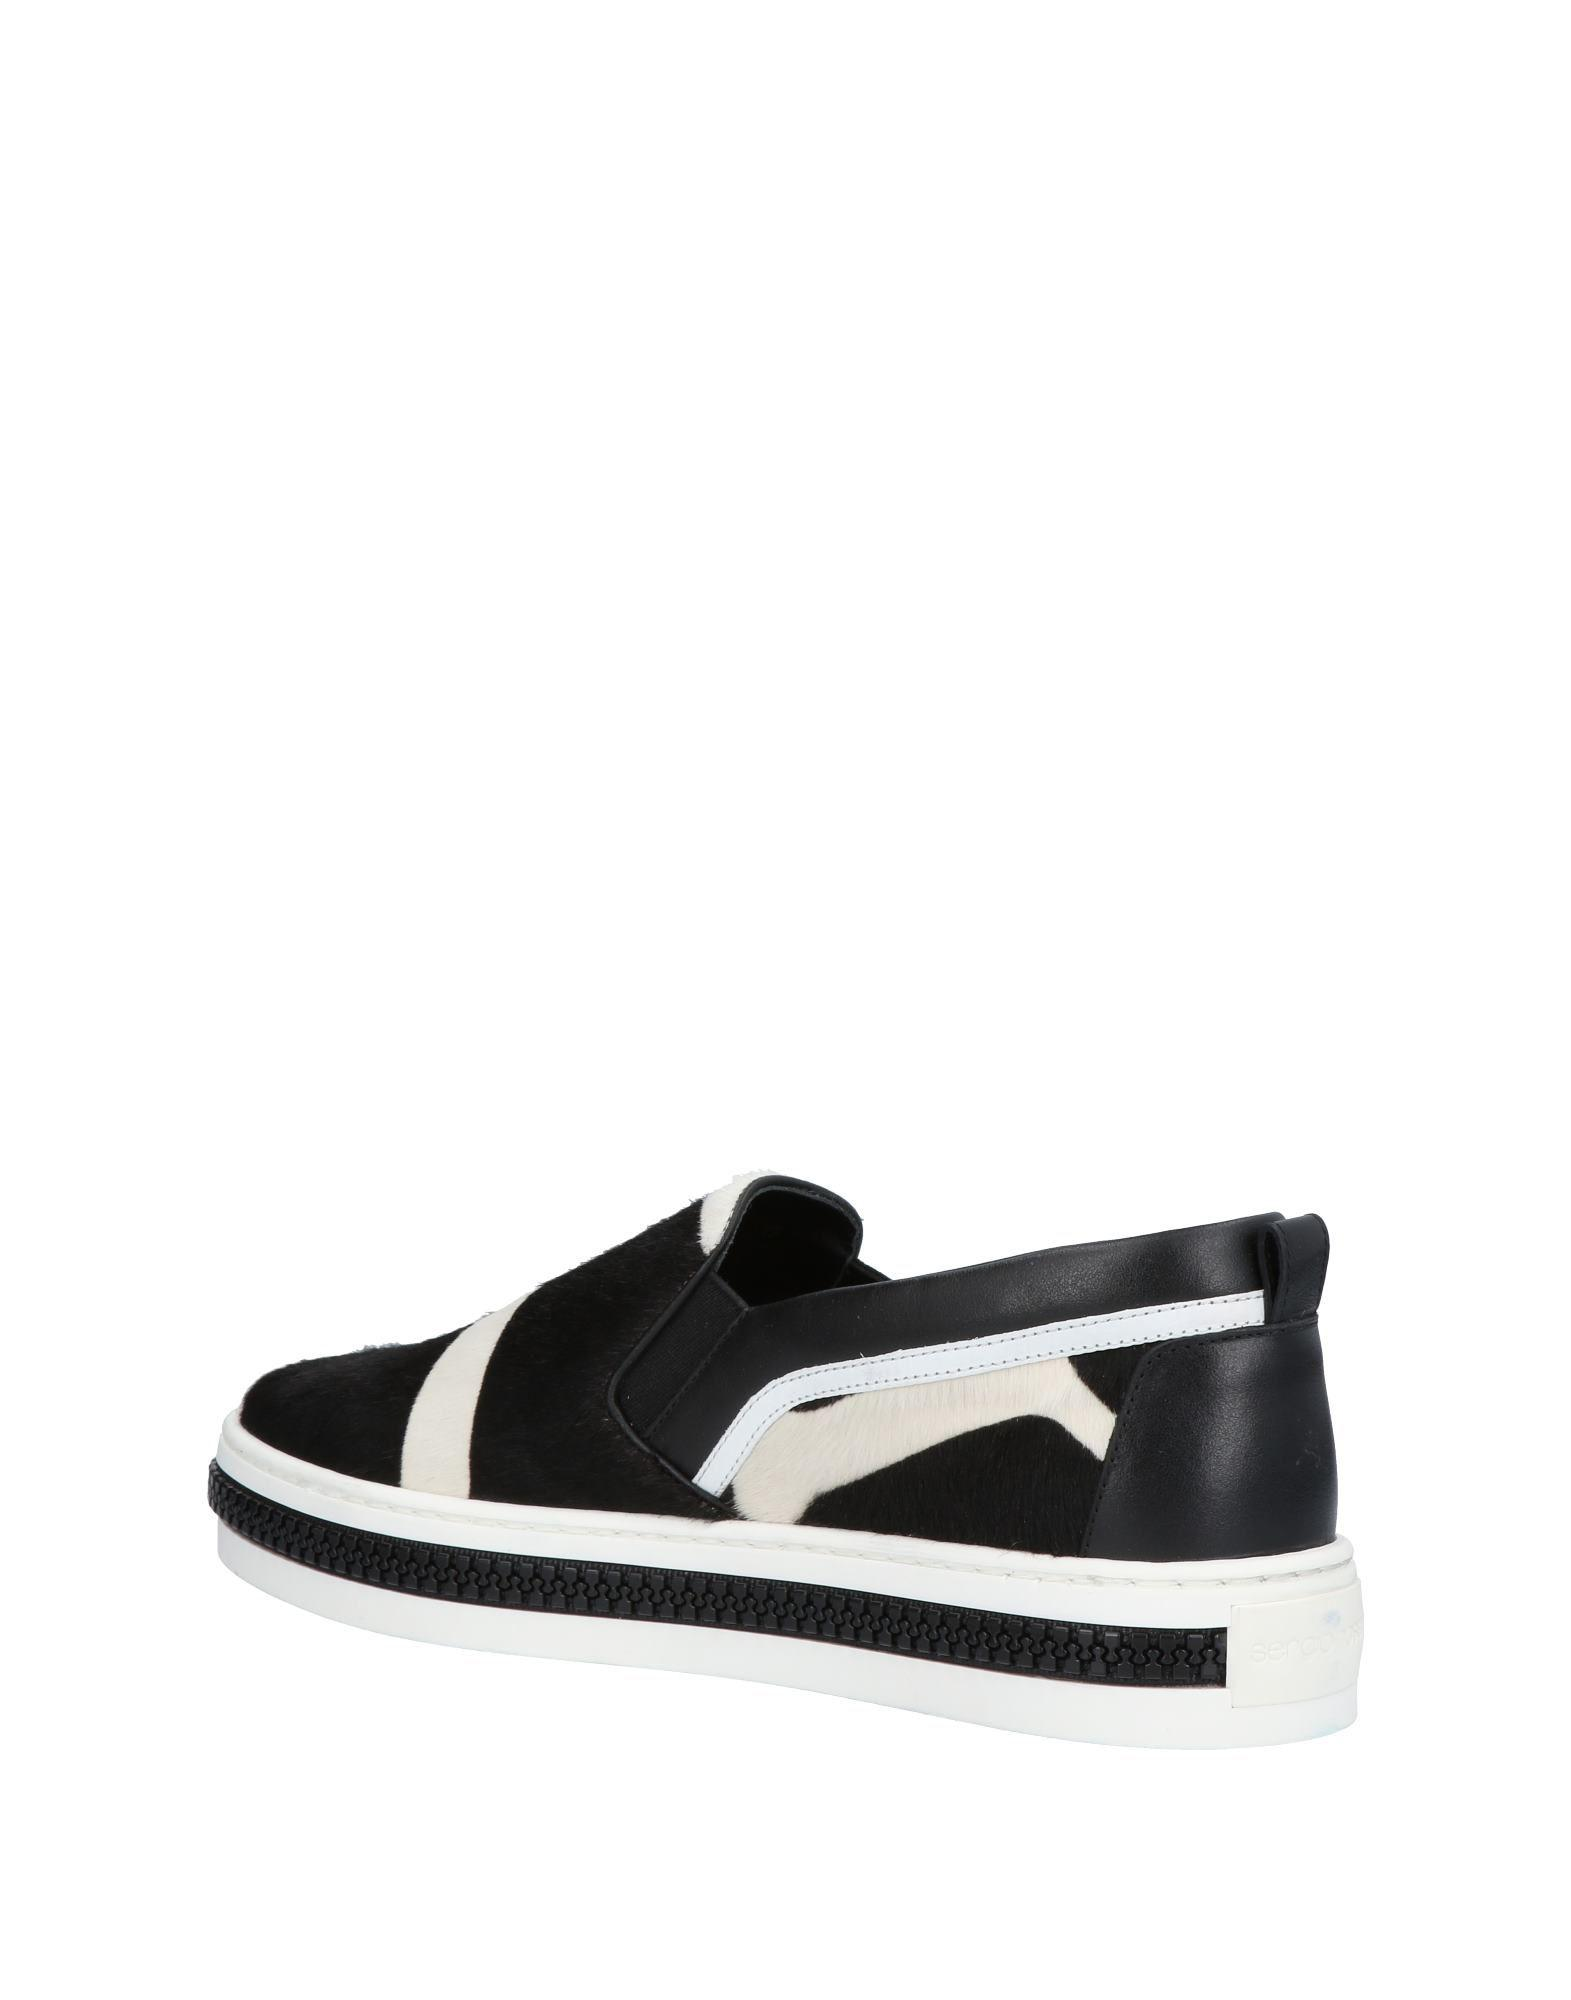 Sergio Rossi Leather Low-tops & Sneakers in Ivory (White)